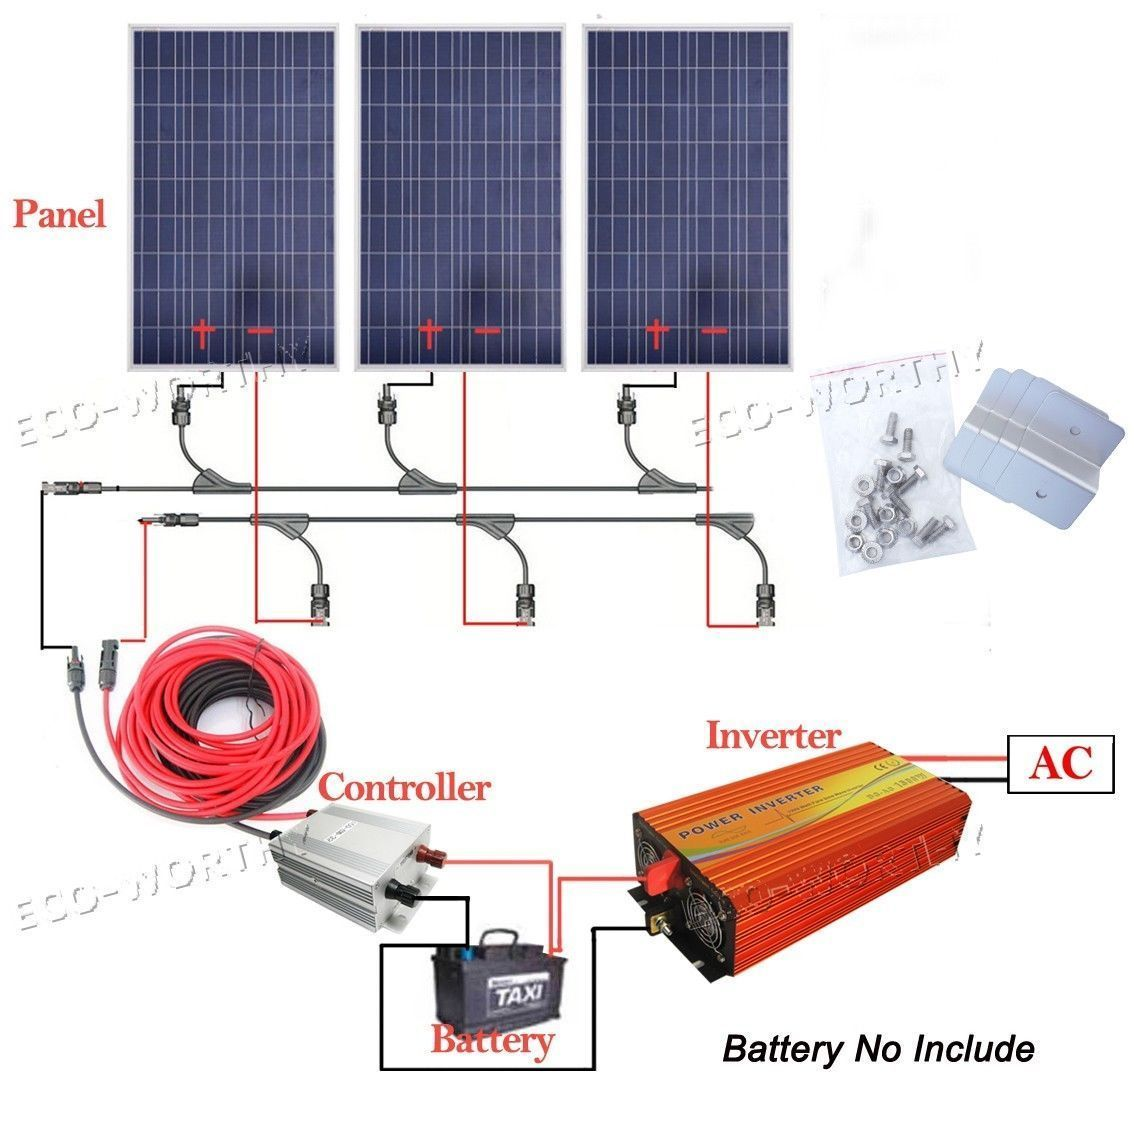 200w 300w 400w 800w Off Grid System 100w Solar Panel W 1kw 1500w 3000w Inverter In Home Garden Home Impro Solar Energy Panels Solar Panels Solar Panel Kits